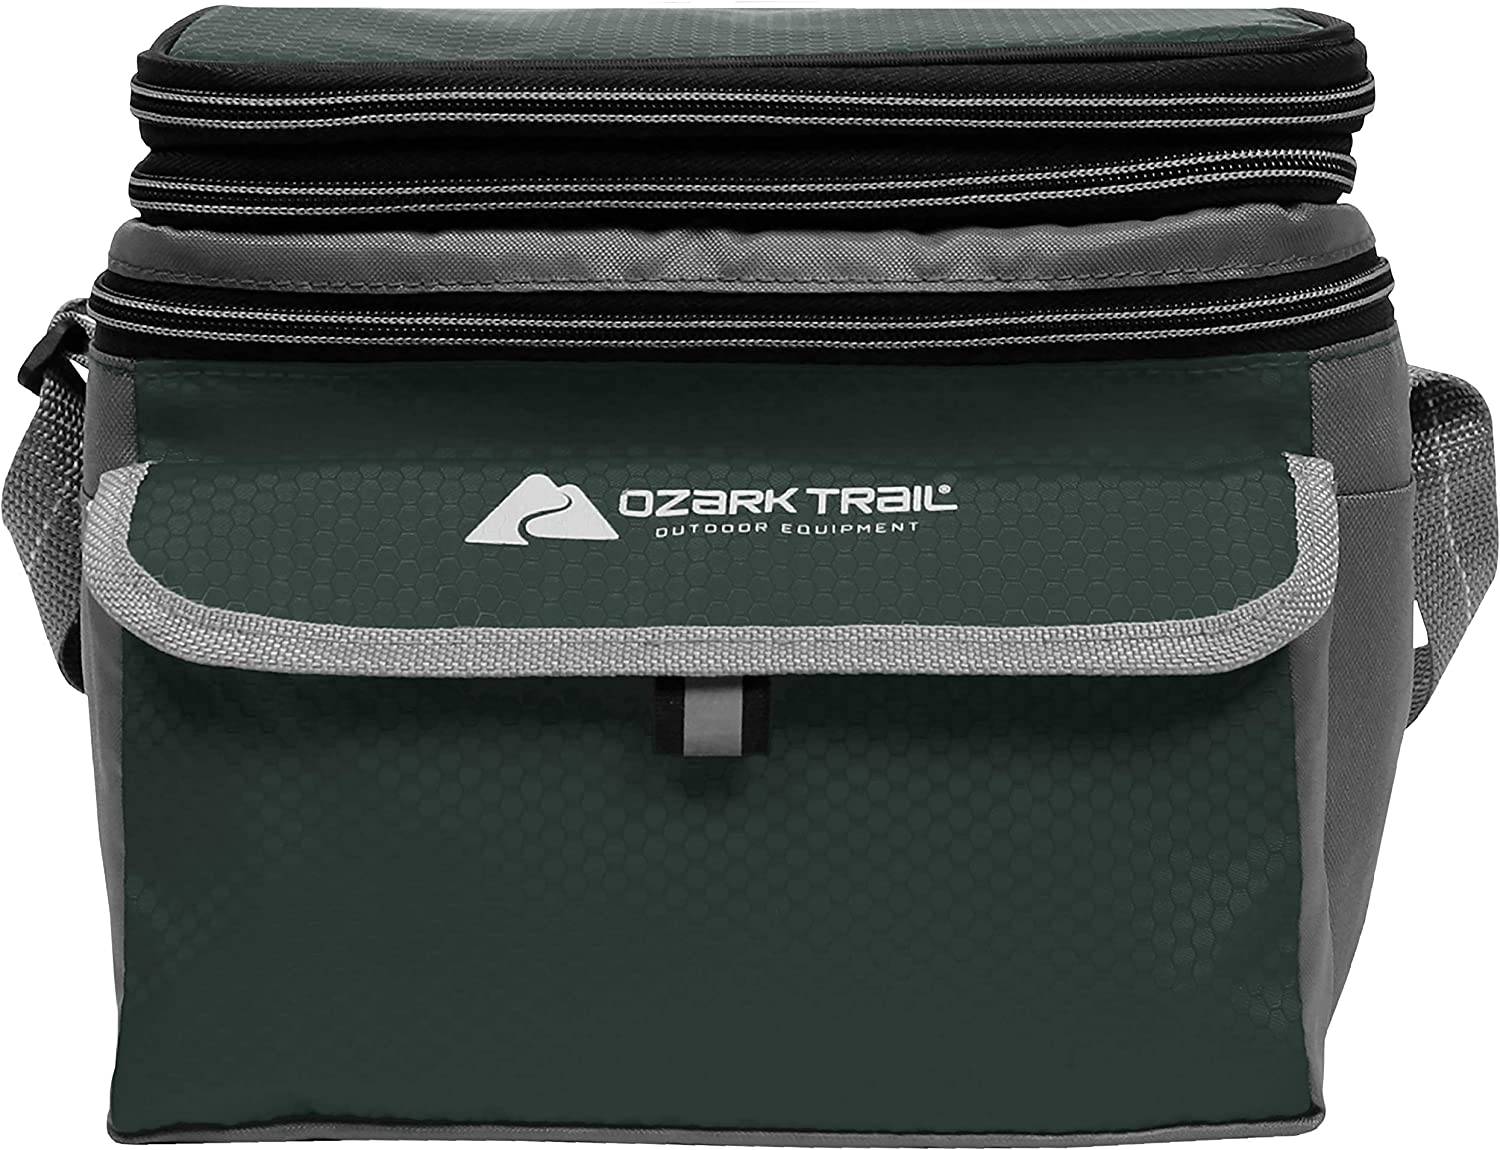 Ozark Trail 6 Can Cooler with Expandable Top - Green